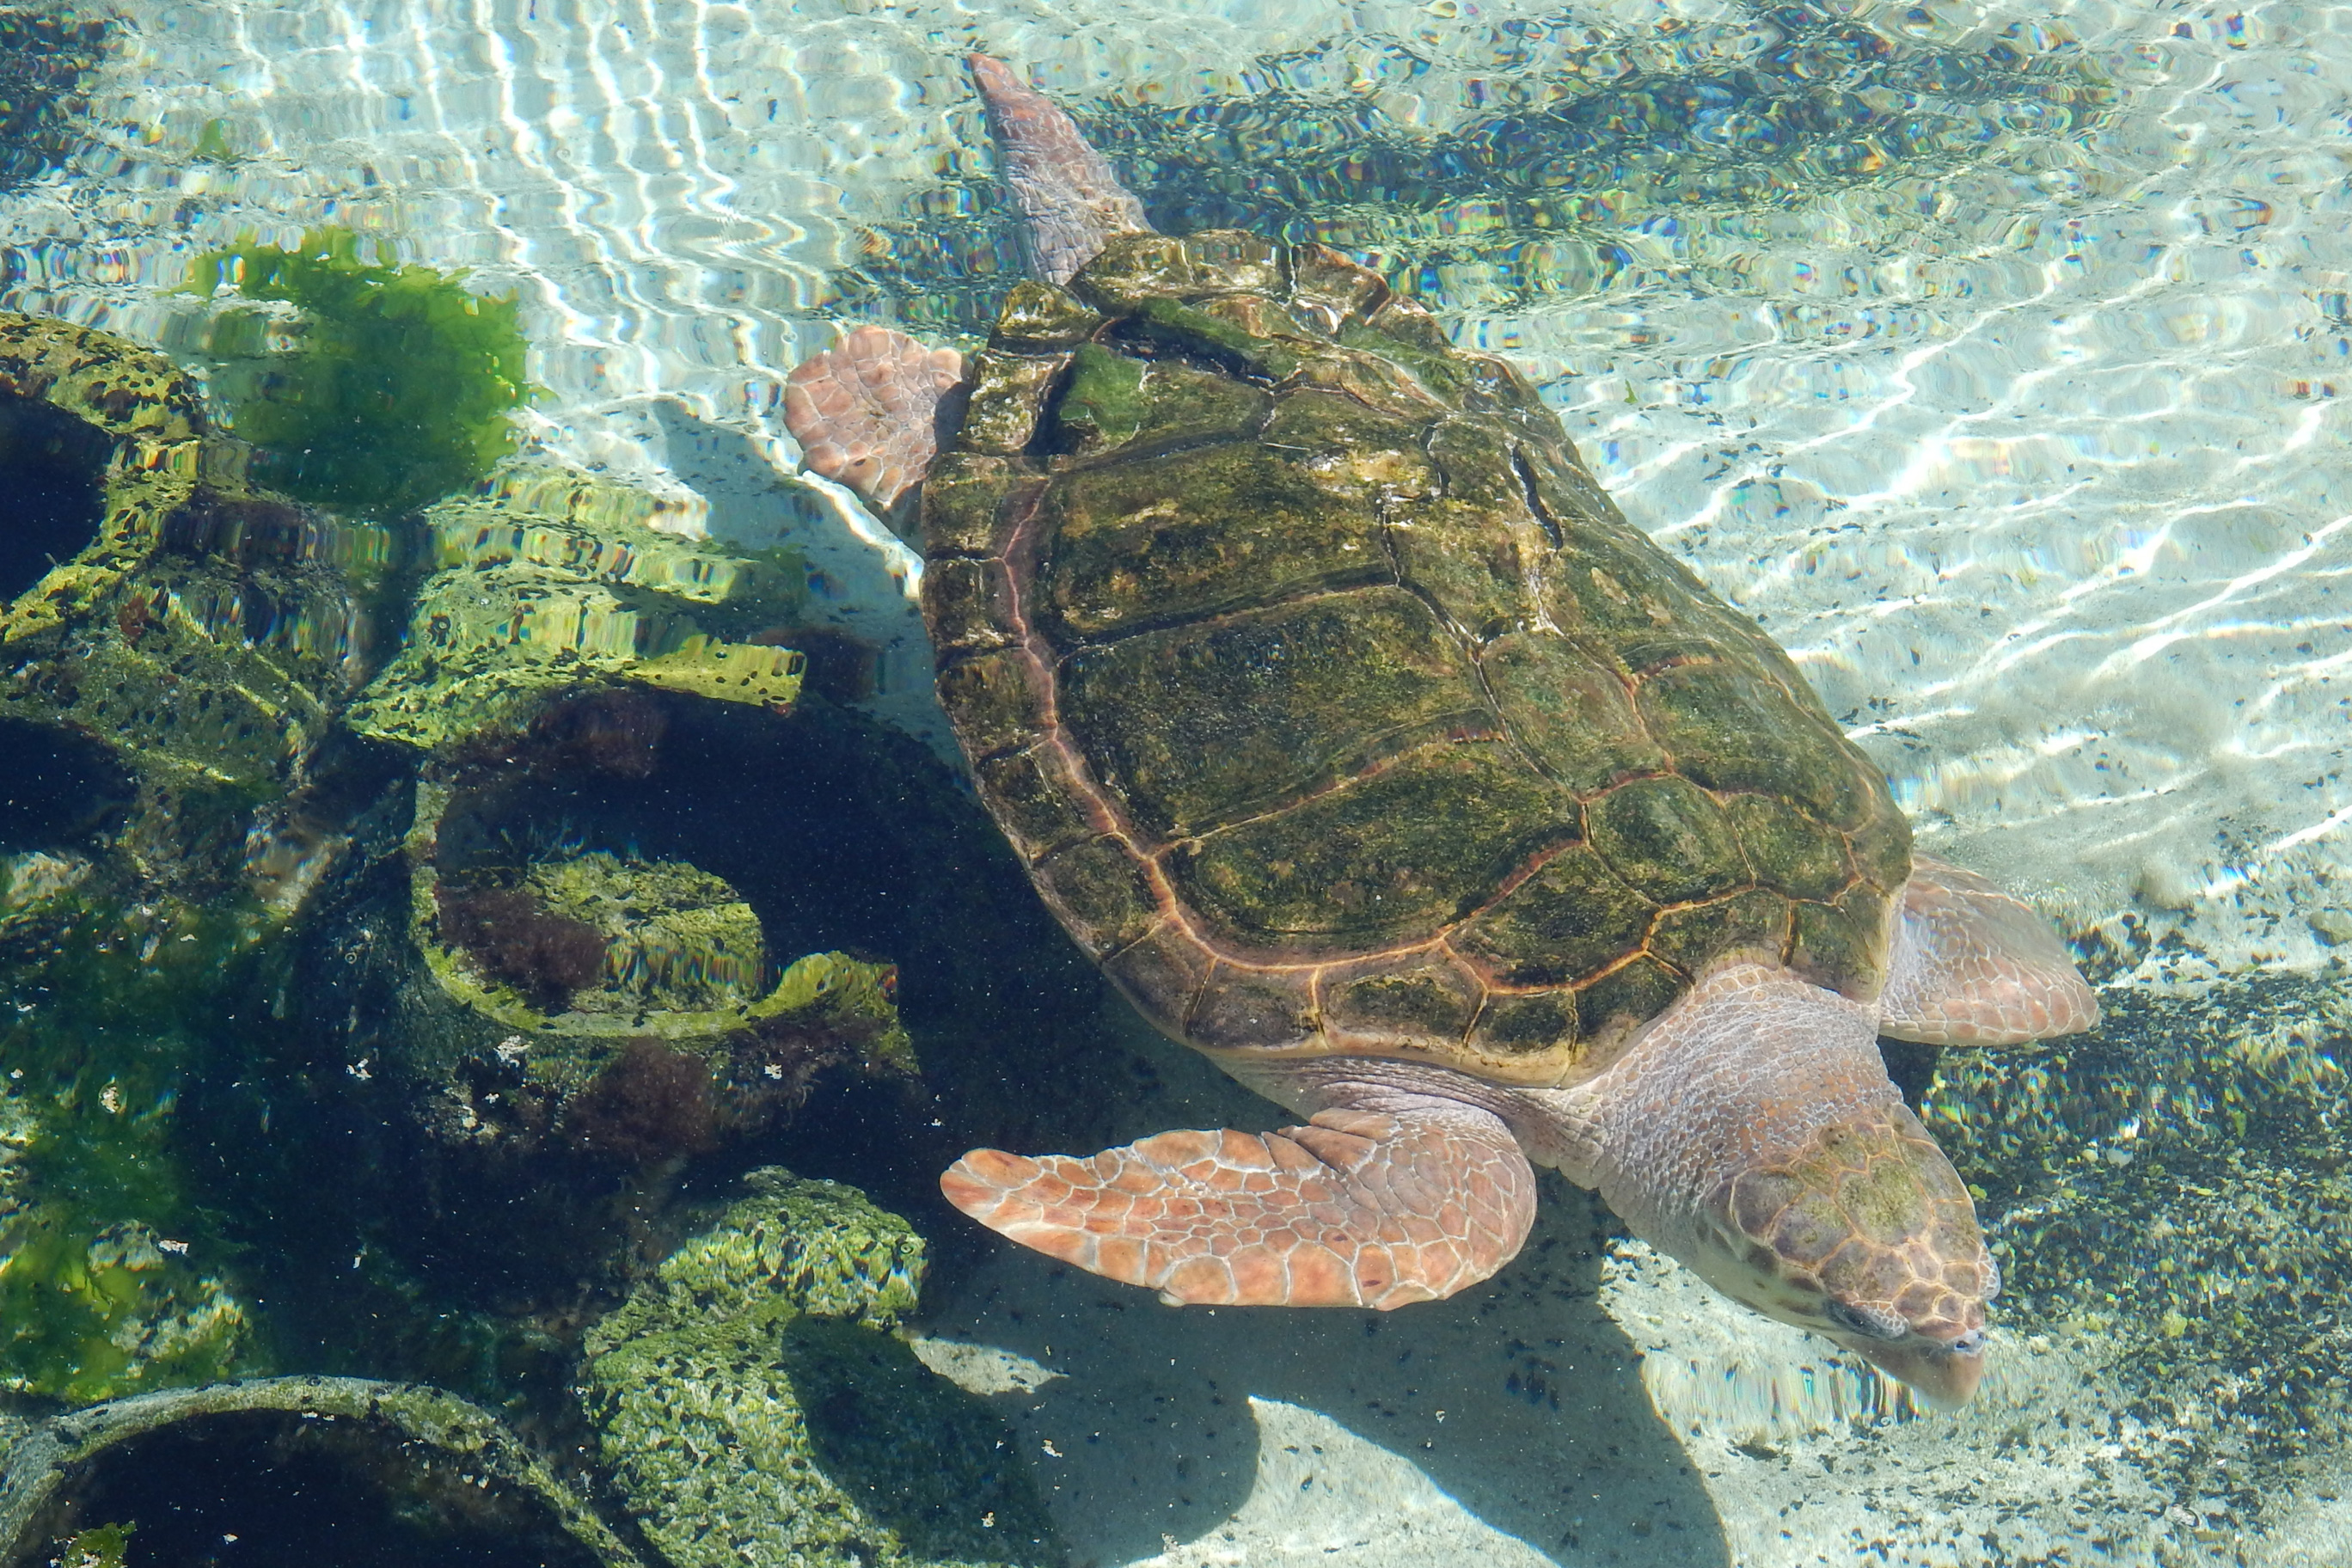 Annabelle the green sea turtle